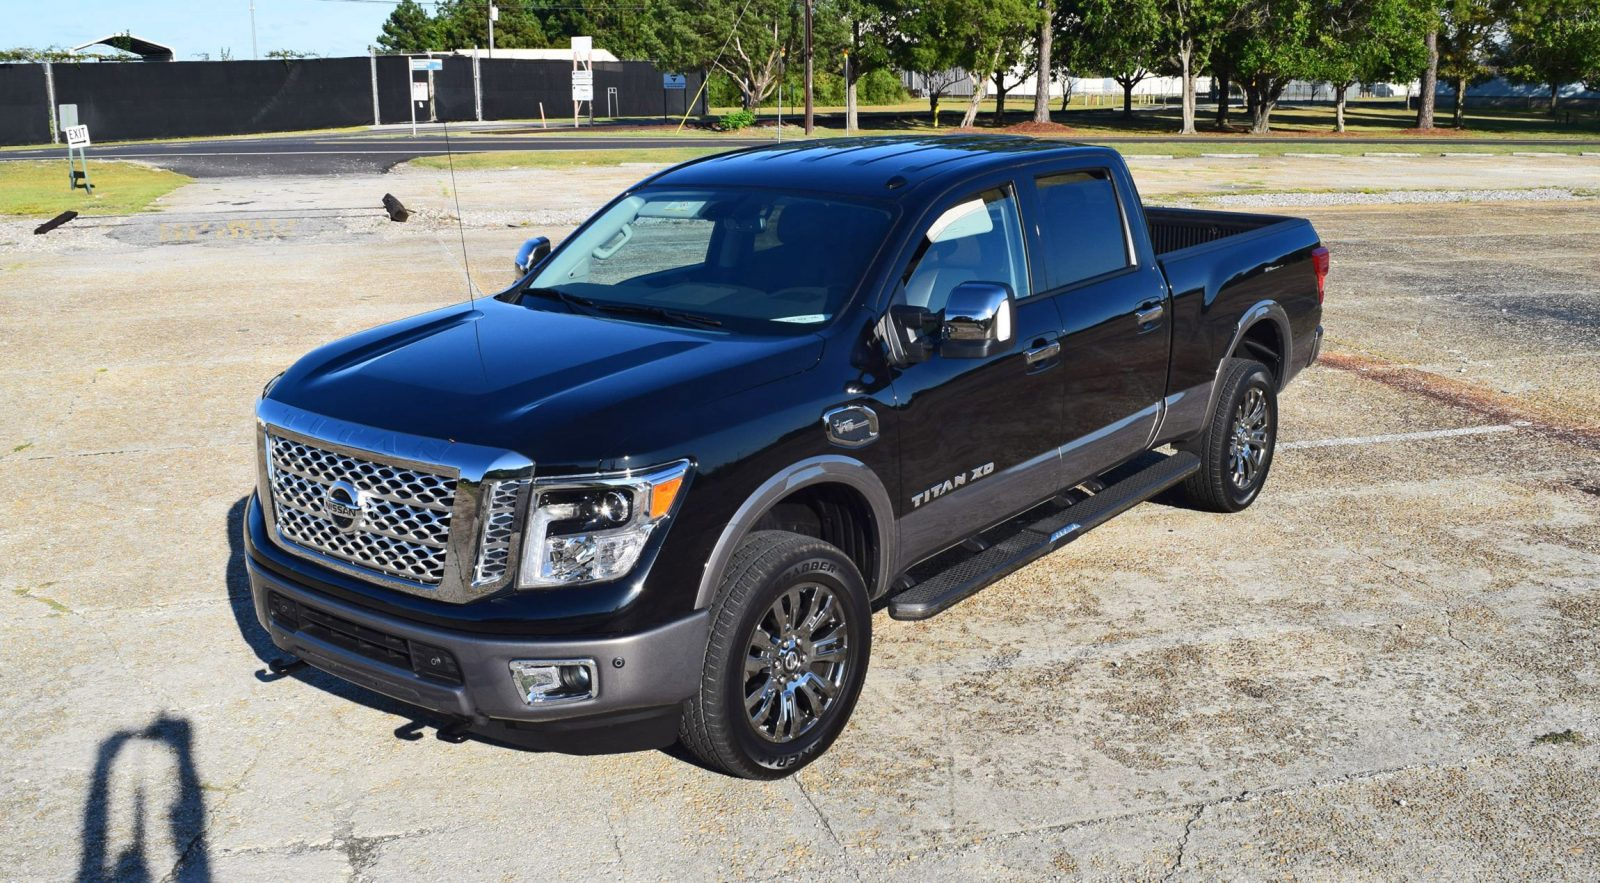 2016 Nissan TITAN XD Platinum Reserve 5 6L V8 - HD Road Test Review